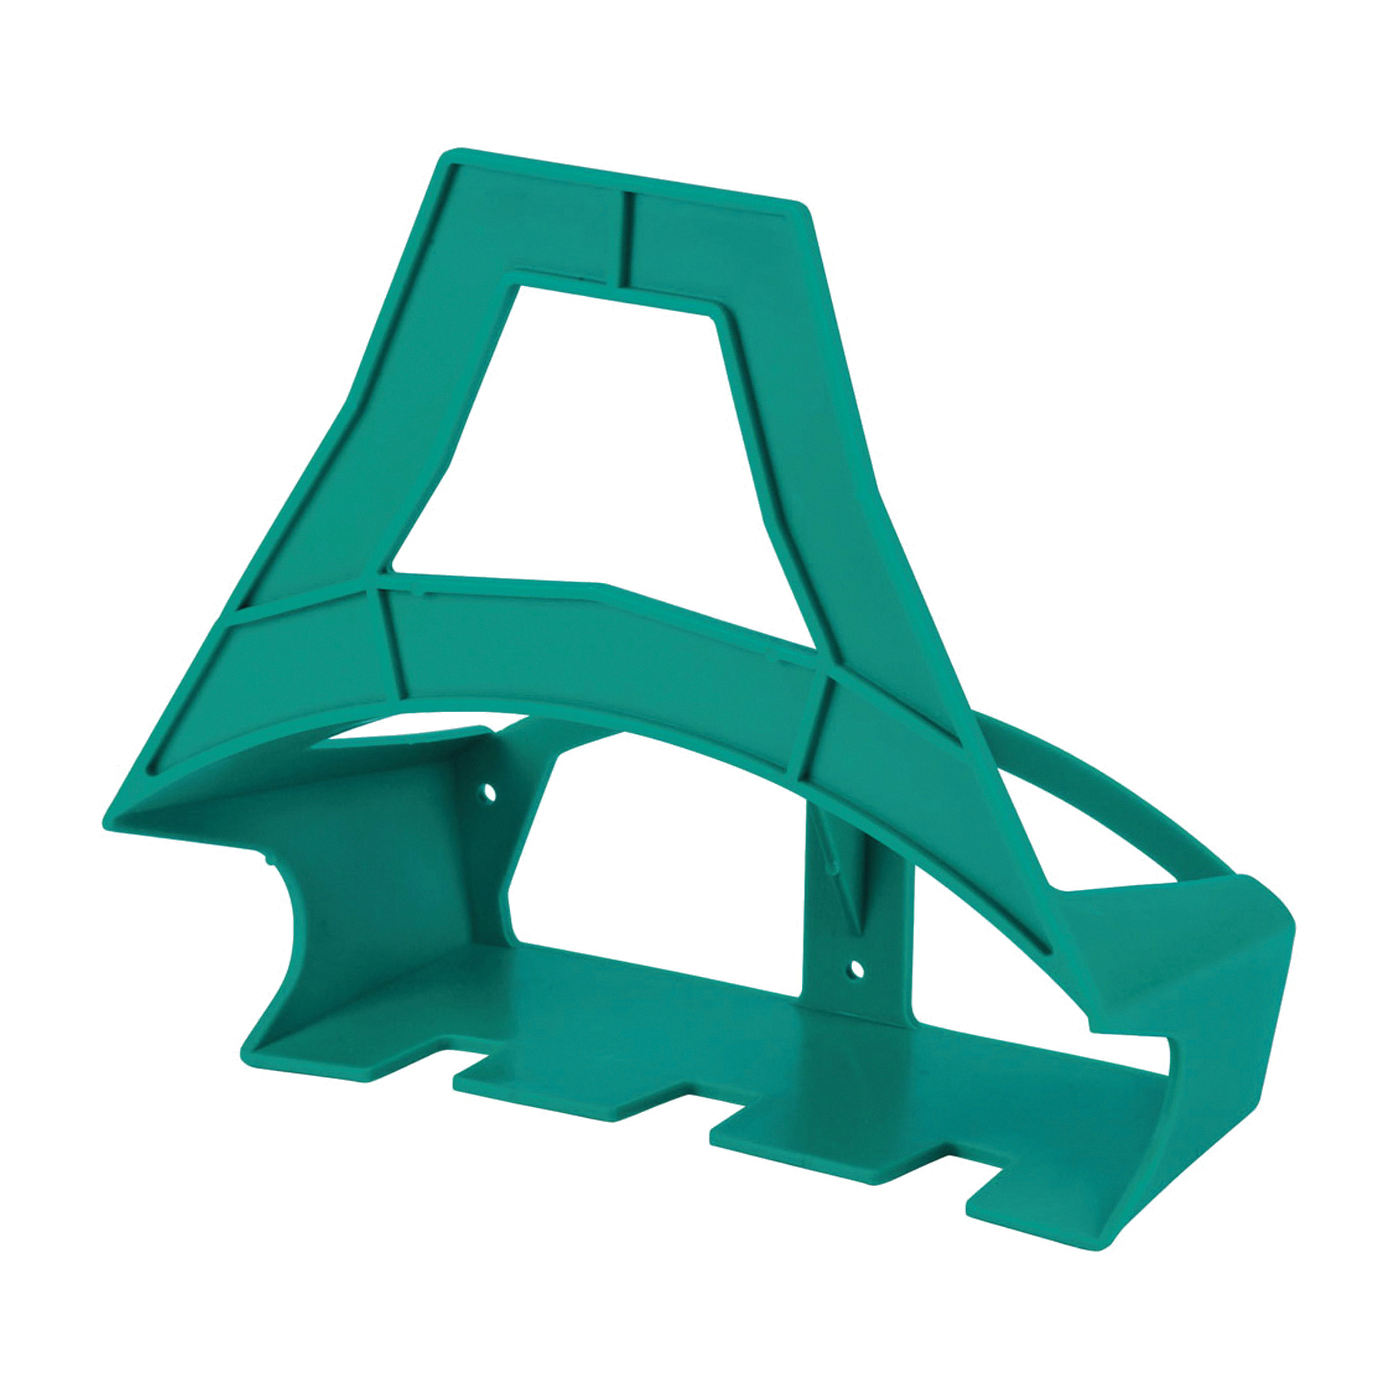 Picture of Gilmour 880154-1001 Hose Hanger, 5/8, 1/2 in Hose, 200 ft Capacity, Polymer, Wall Mounting